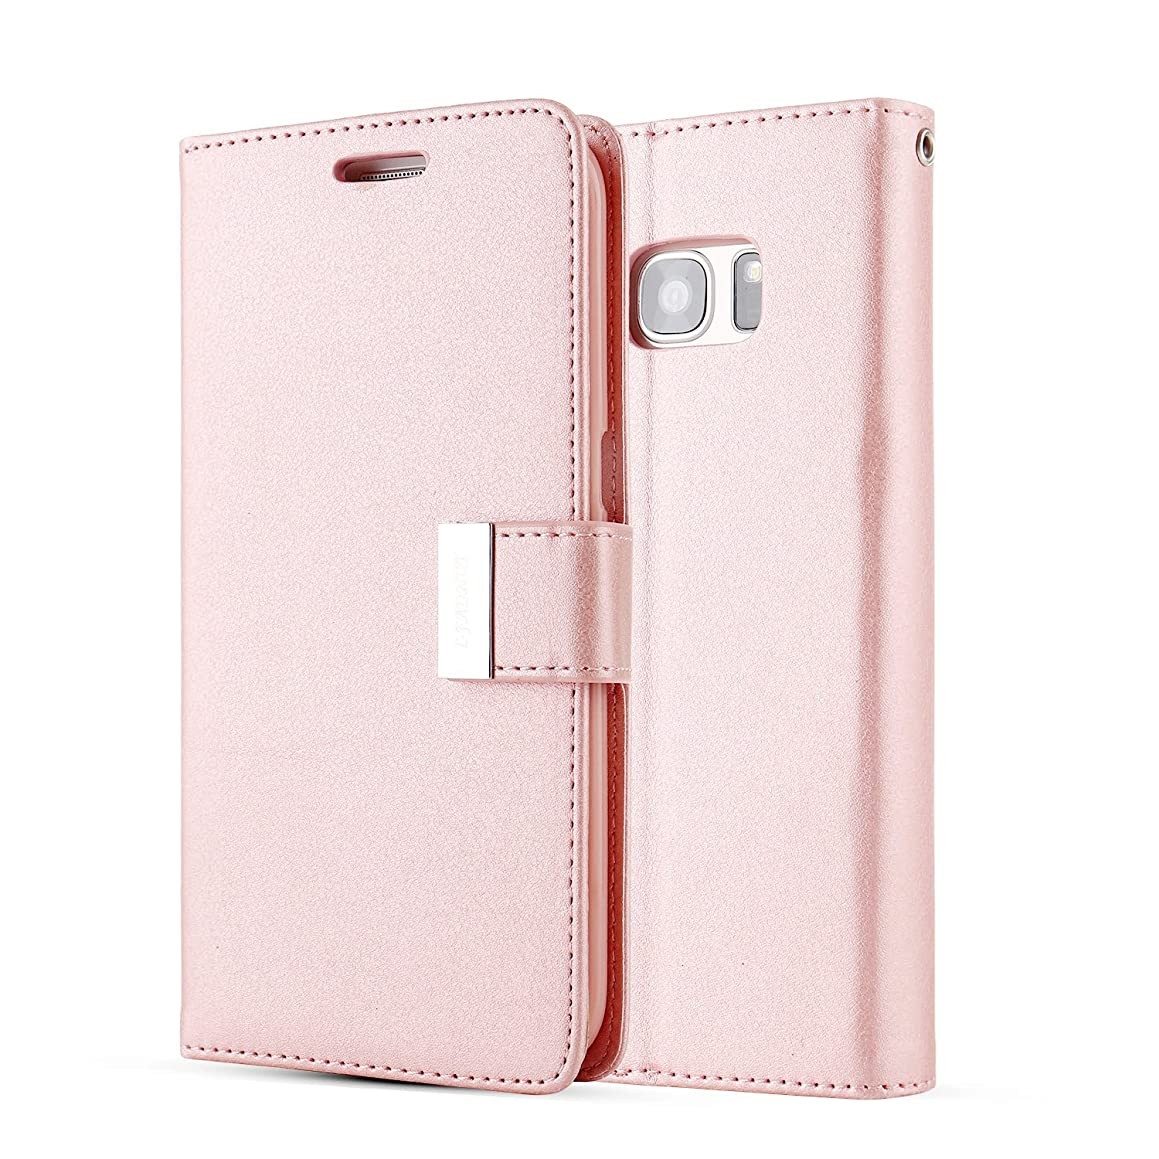 for Samsung Galaxy S5 Case,L-FADNUT Luxury Flip PU Leather Case,Dual Card Slots Metal Megnetic Closure Stand Wallet Card Holder Case Cover for Samsung Galaxy S5 - Rose Gold